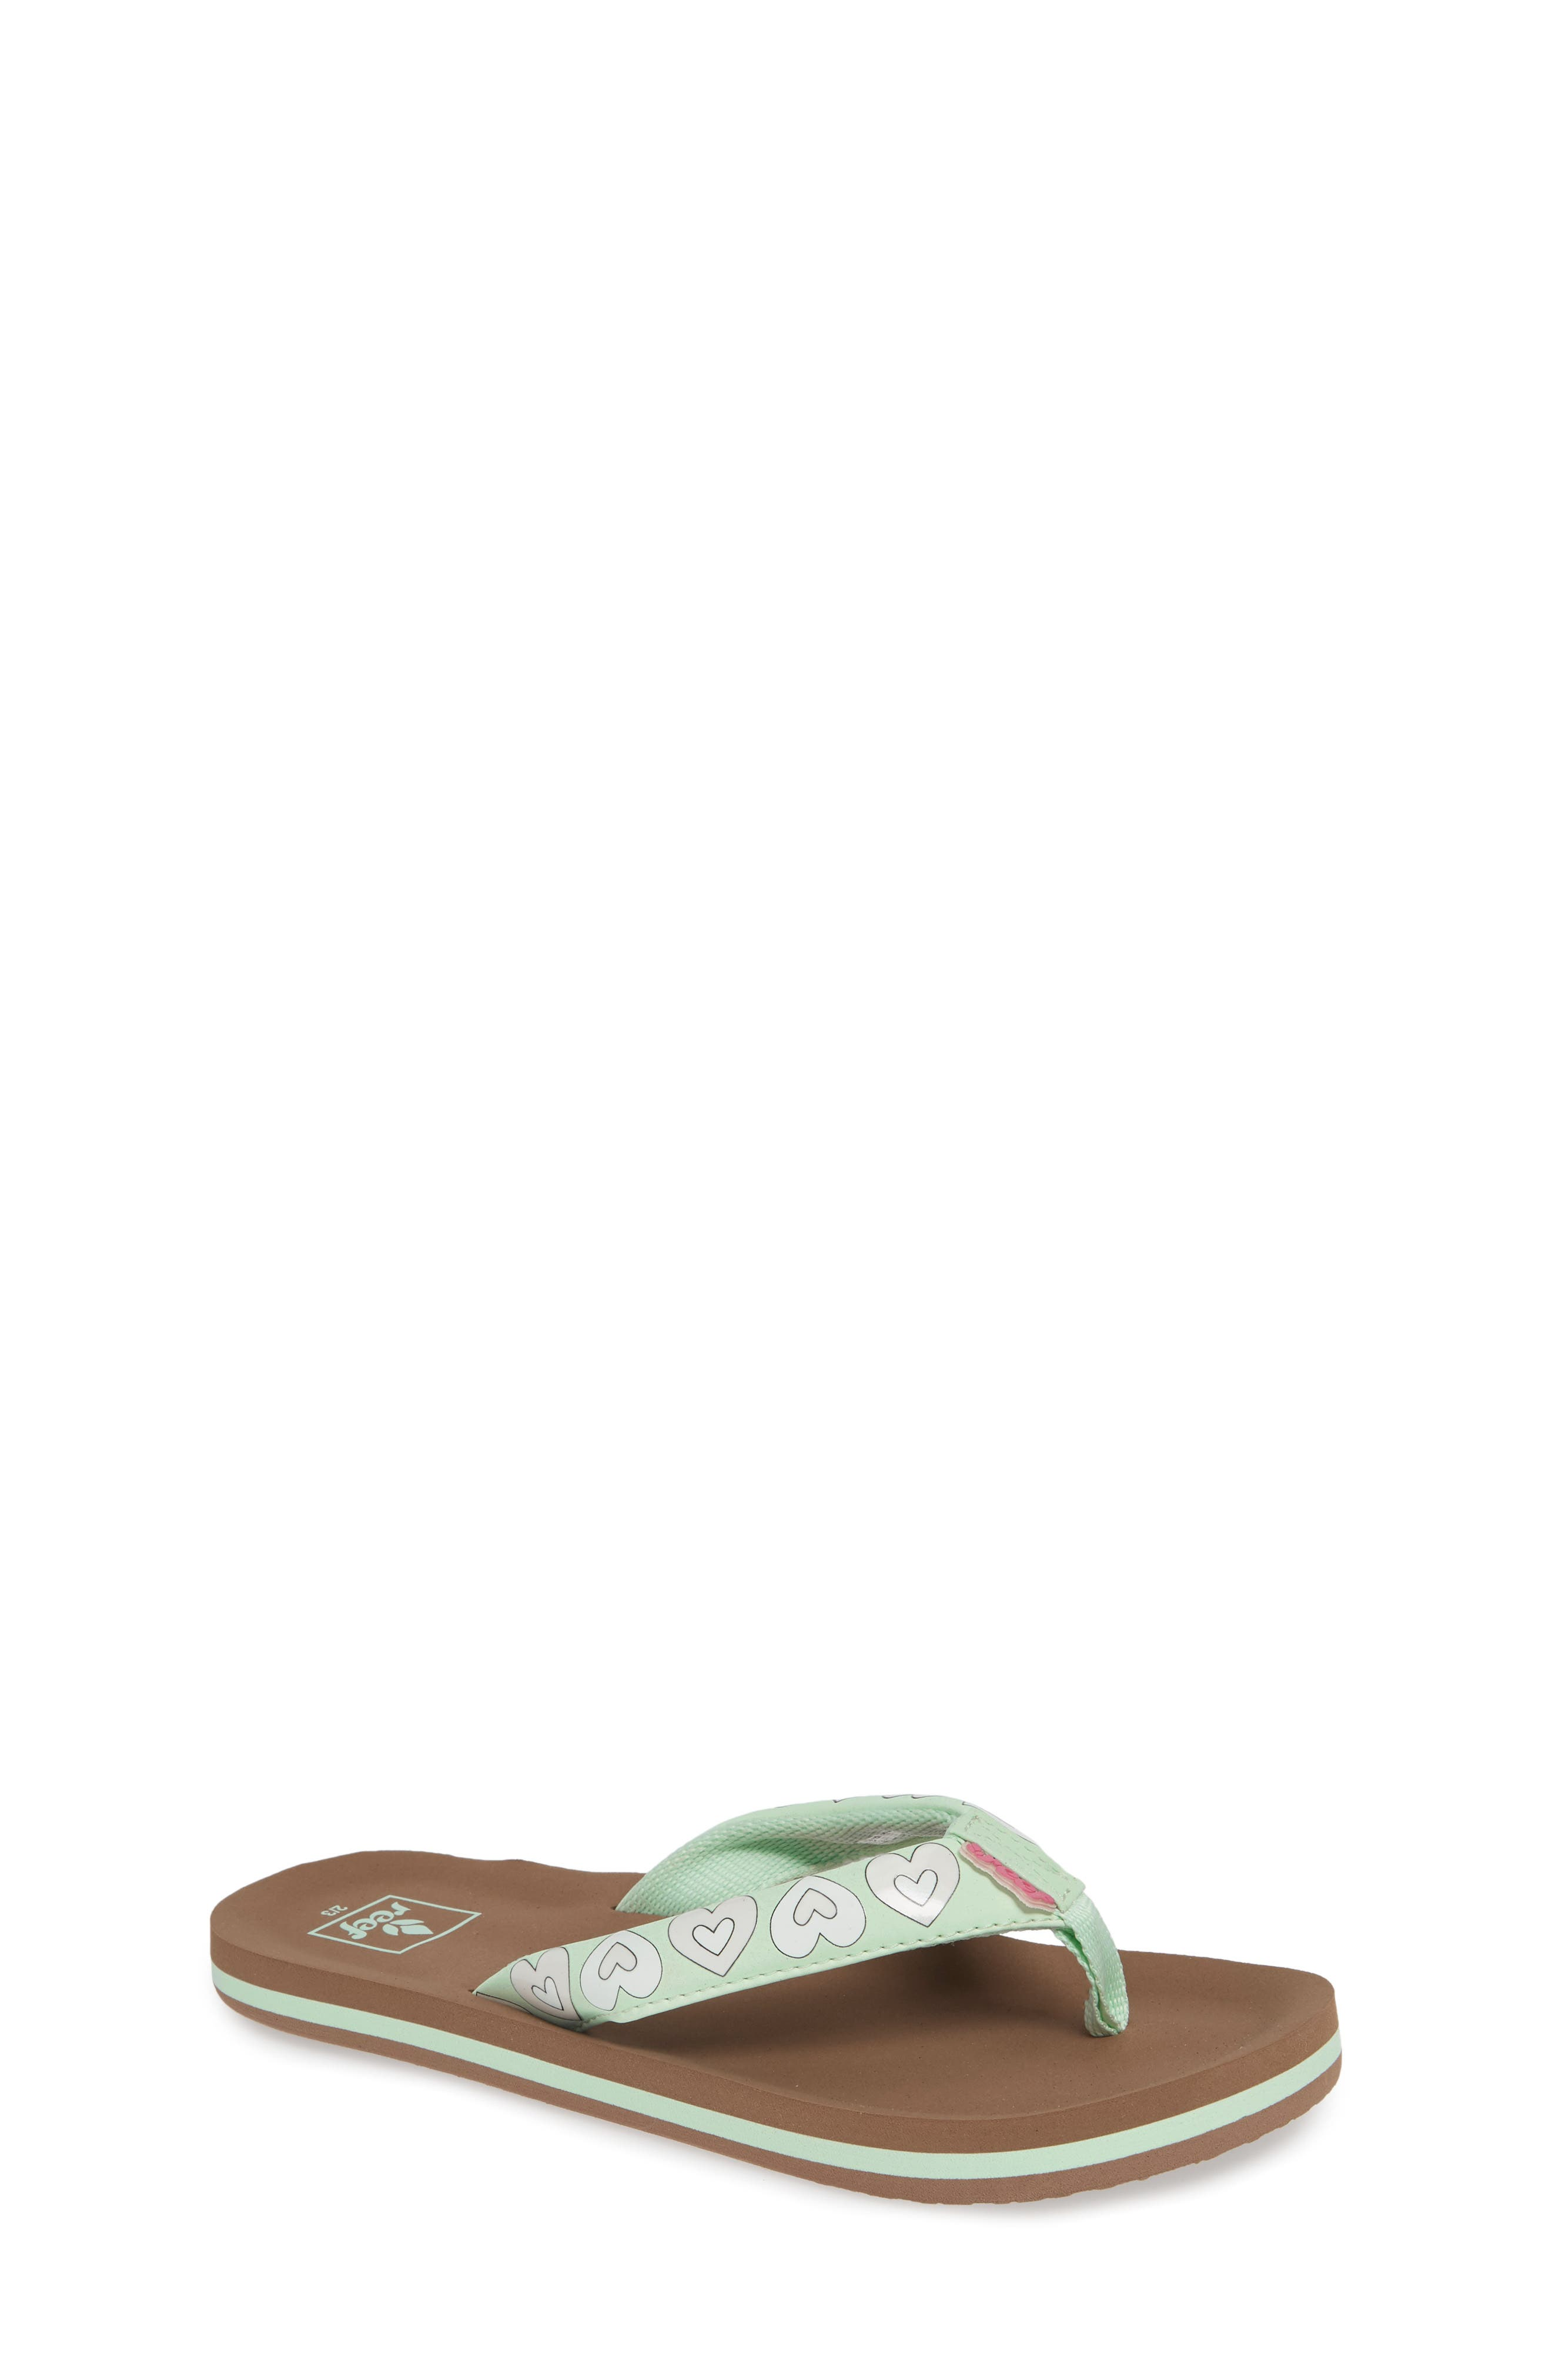 REEF Little Ahi Color Change Flip Flop, Main, color, MINT HEARTS